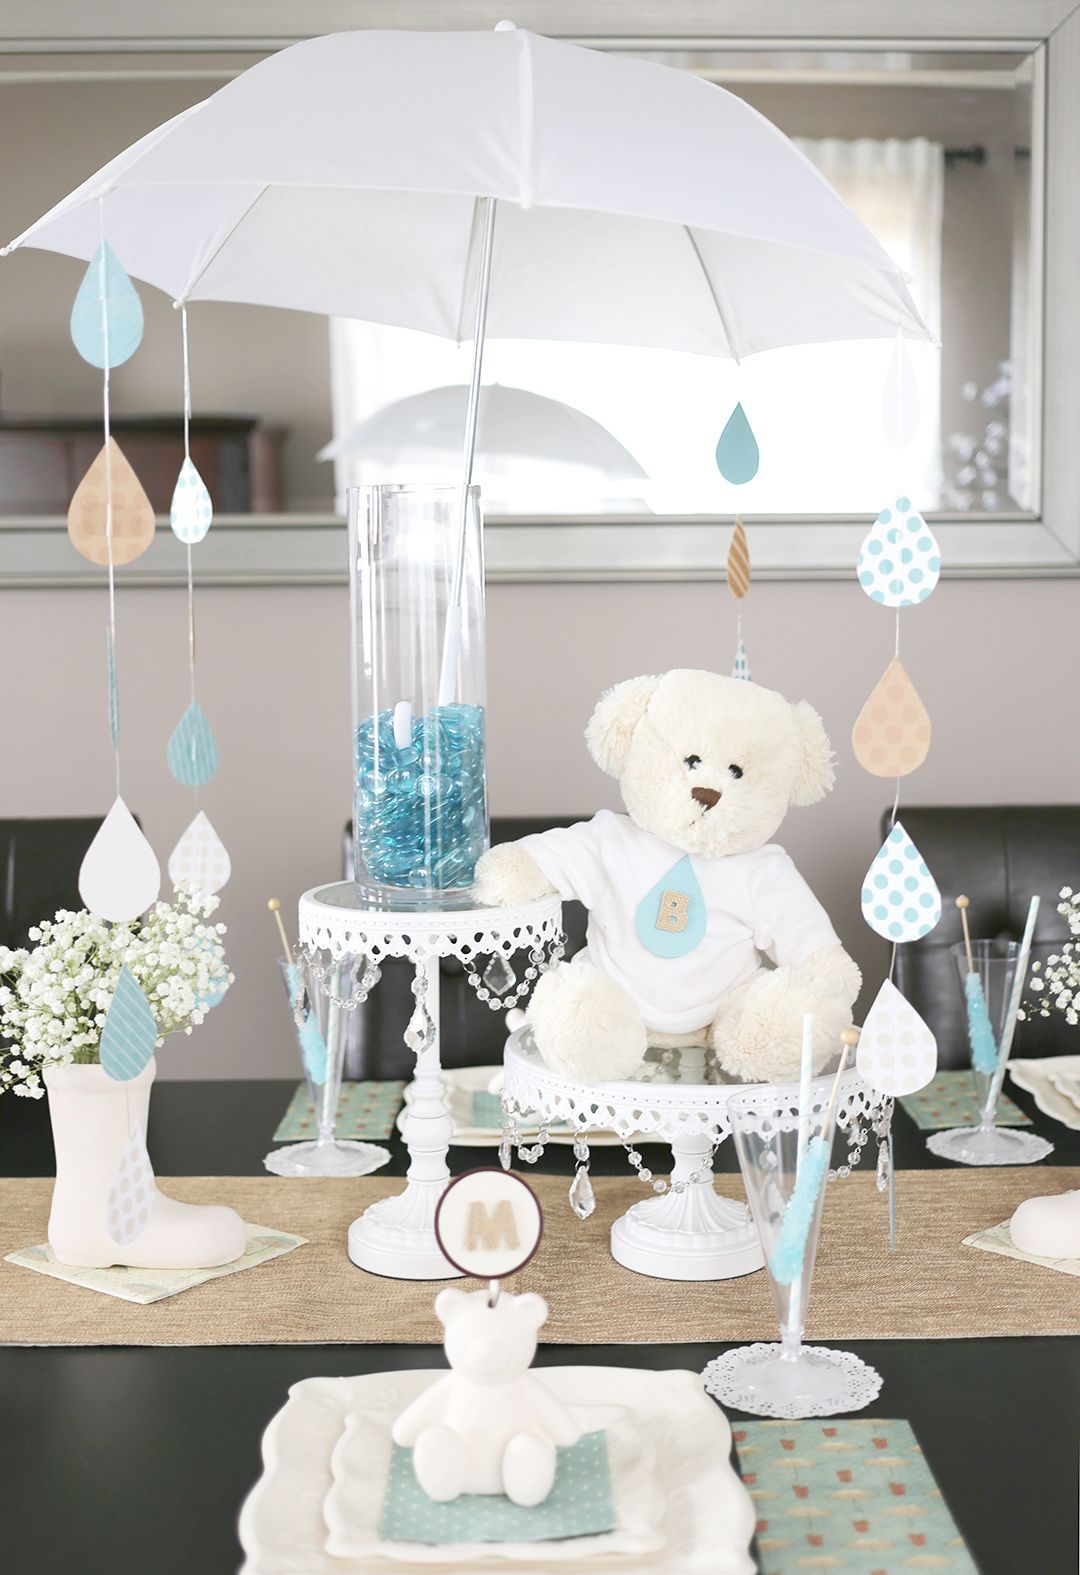 a sweet umbrella themed baby shower creative things pinterest umbrella centerpiece. Black Bedroom Furniture Sets. Home Design Ideas